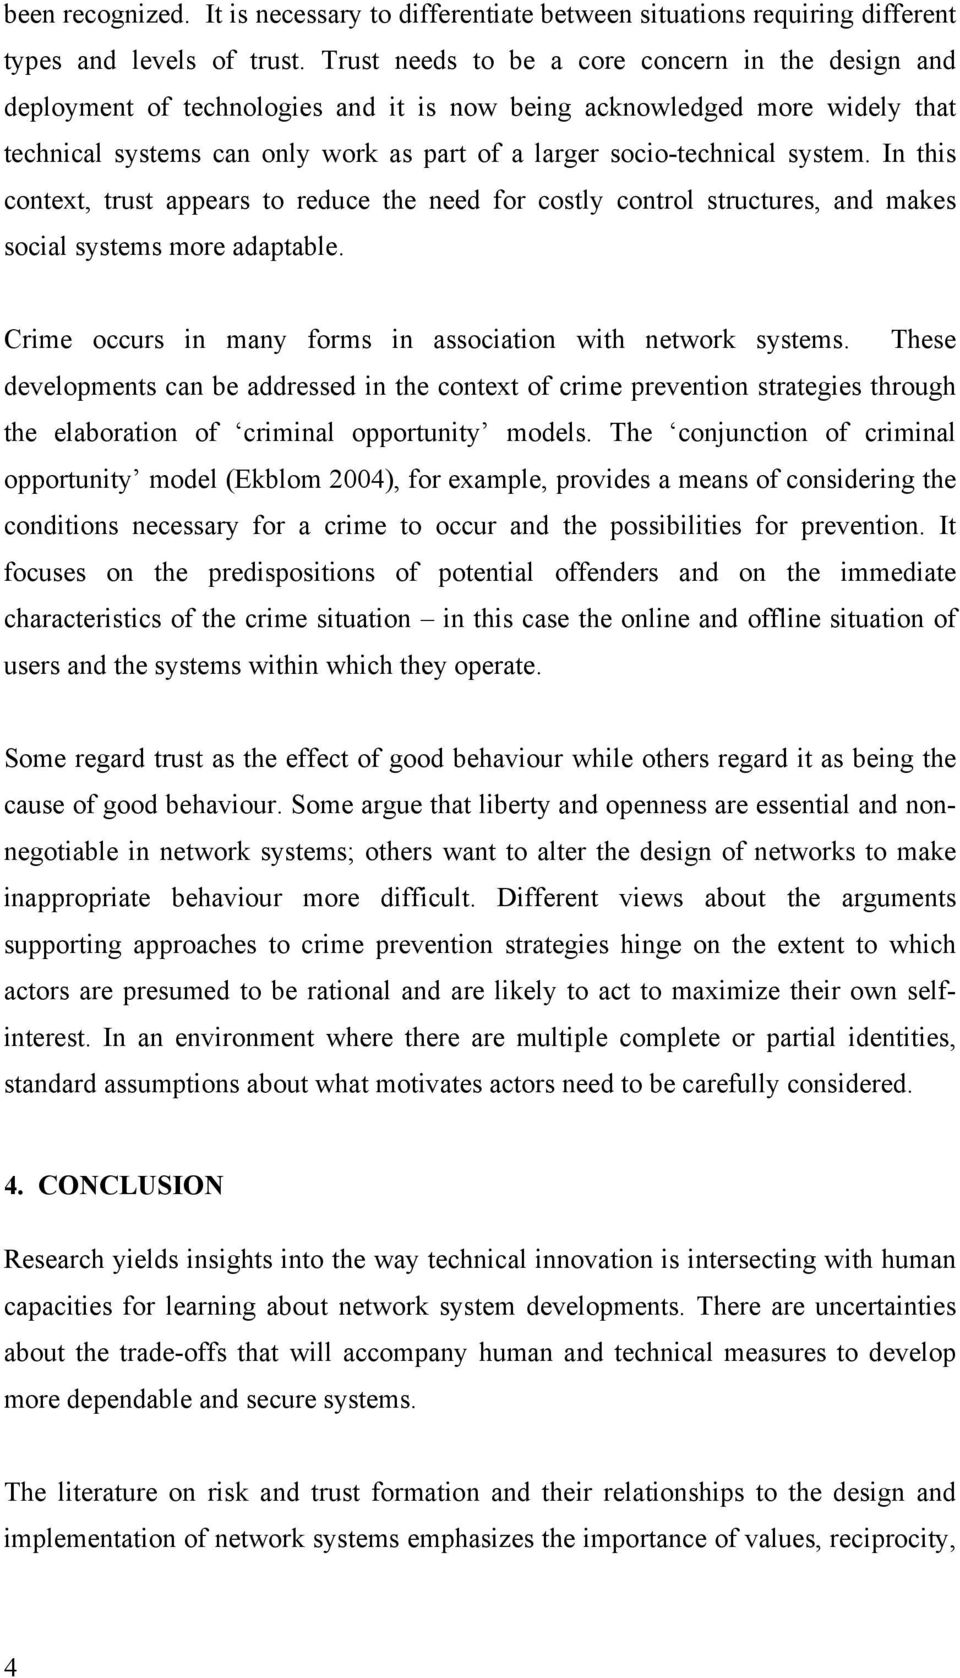 system. In this context, trust appears to reduce the need for costly control structures, and makes social systems more adaptable. Crime occurs in many forms in association with network systems.